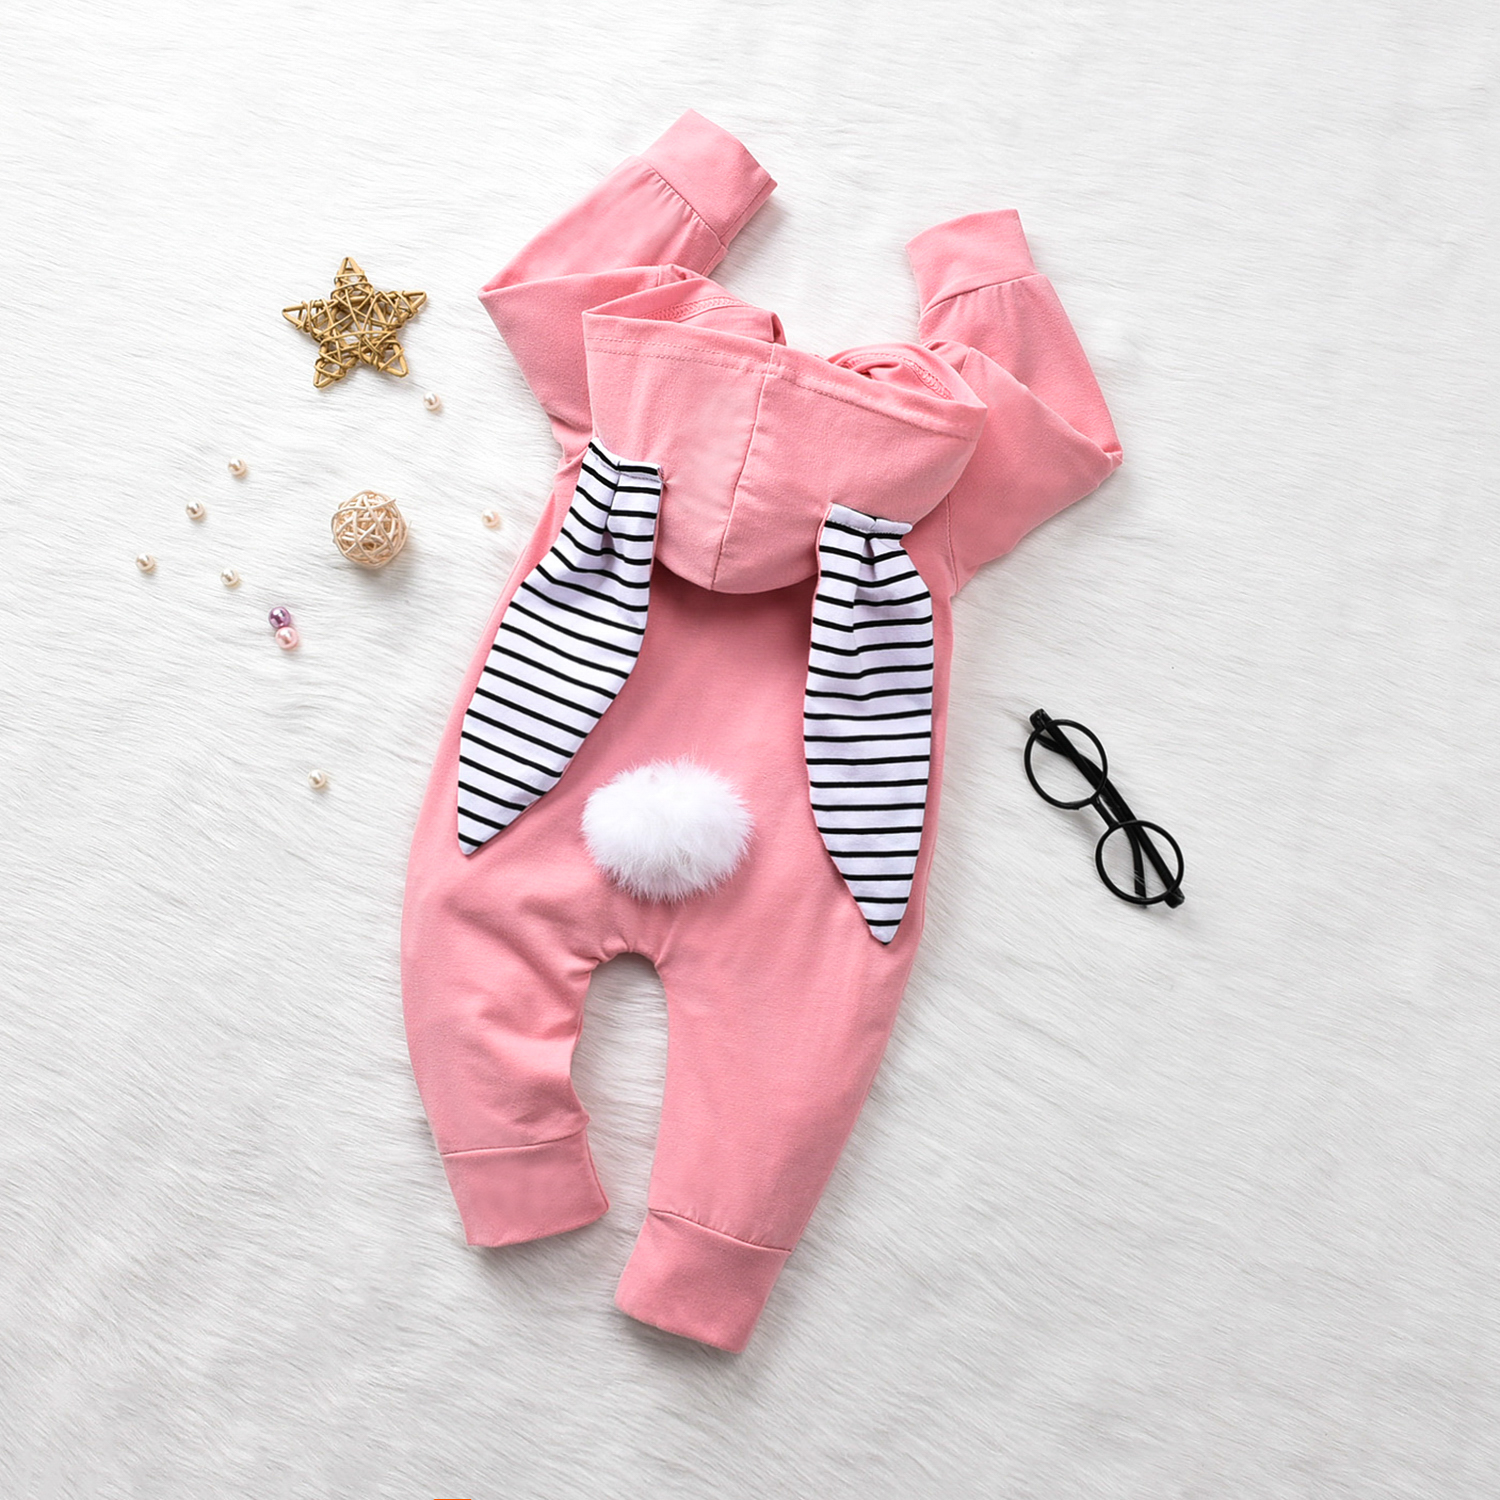 0-24M Newborn Infant Baby Boy Girl Bunny Romper Long Sleeve Pom Pom Jumpsuit Easter Baby Costumes Autumn Spring Clothes